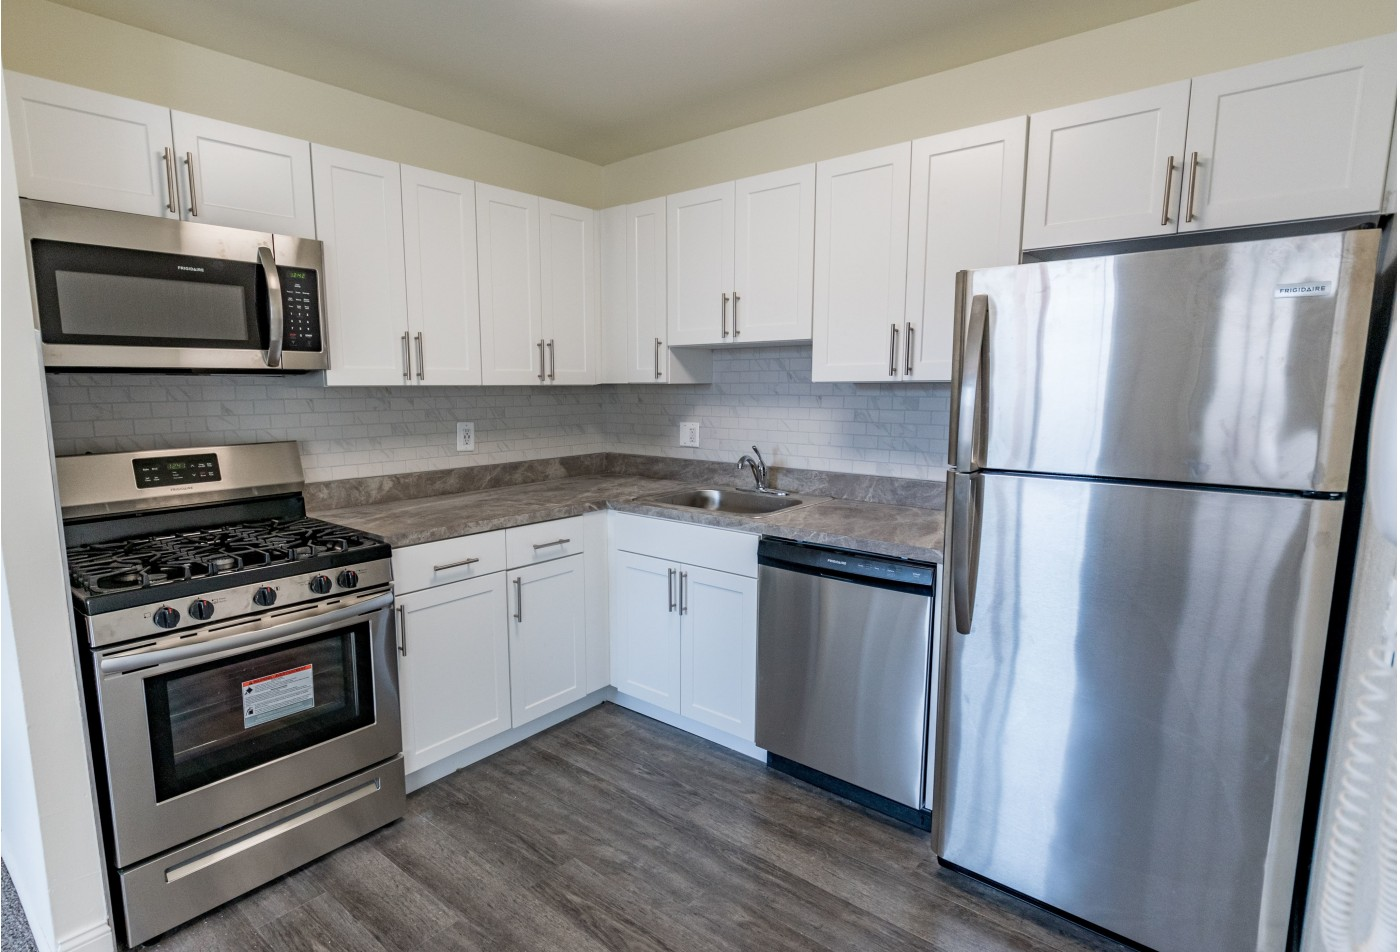 Apartments for rent in Willow Grove, PA | Jamestown Village Apartments